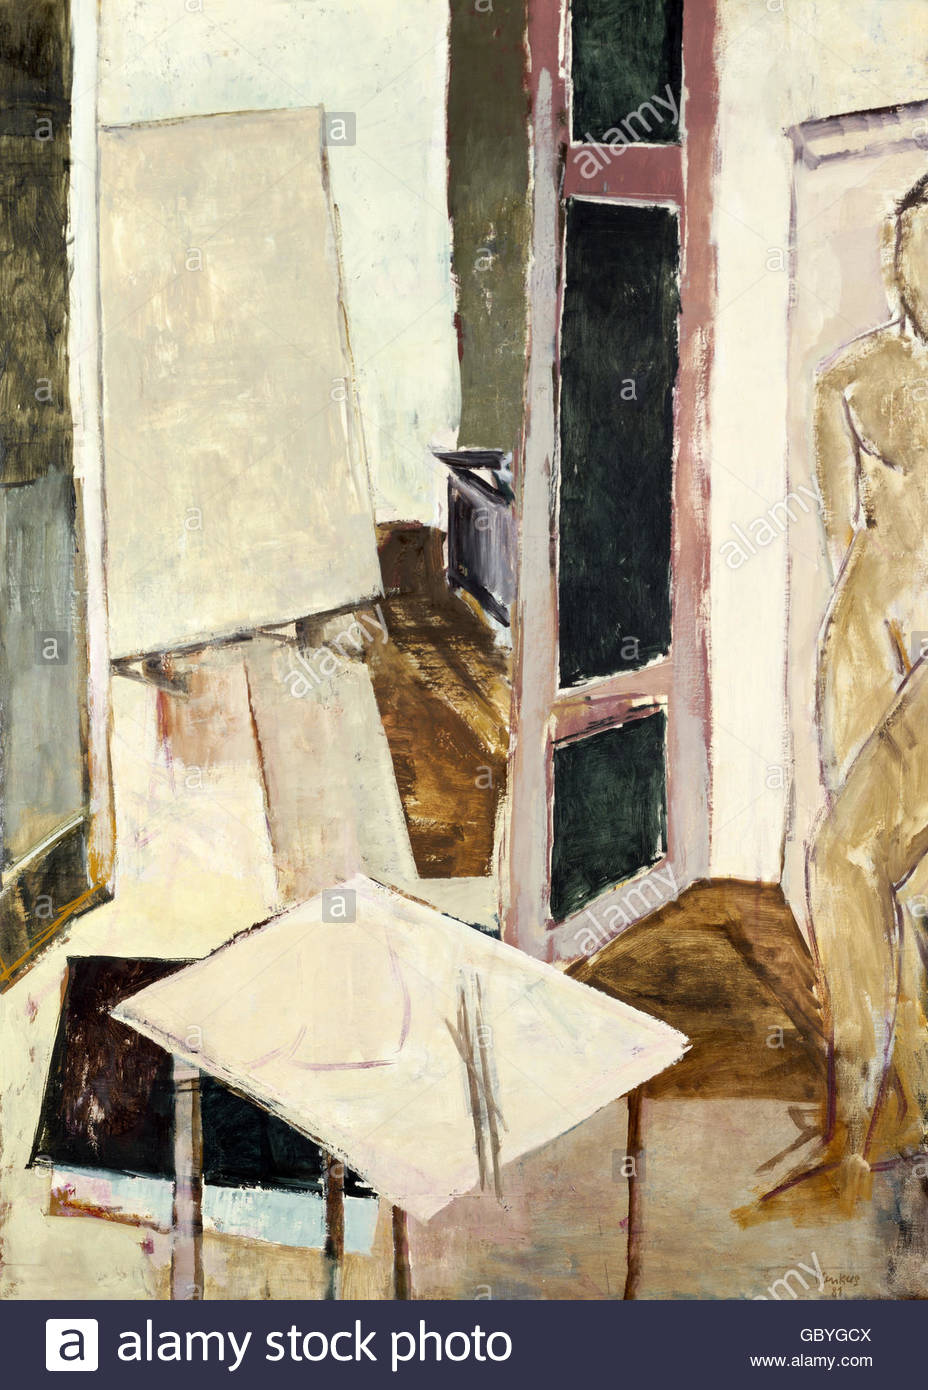 fine arts, Plenkers, Stefan, (* 1945), painting 'Atelierinterieur', 1981, Artist's Copyright must also - Stock Image